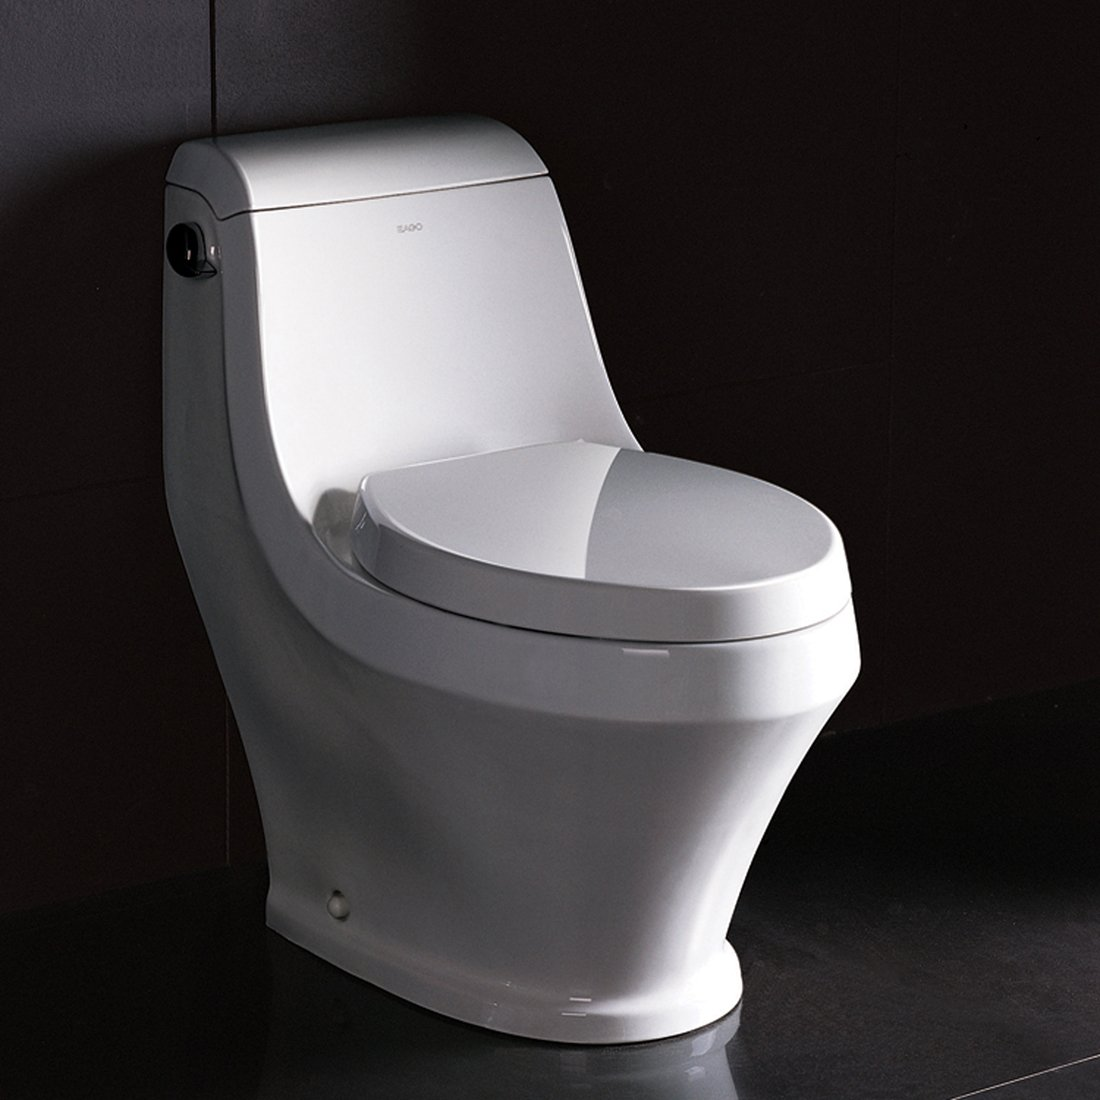 Ariel Platinum ''Apollo'' Contemporary One Piece White Toilet 28x14x26 by Ariel